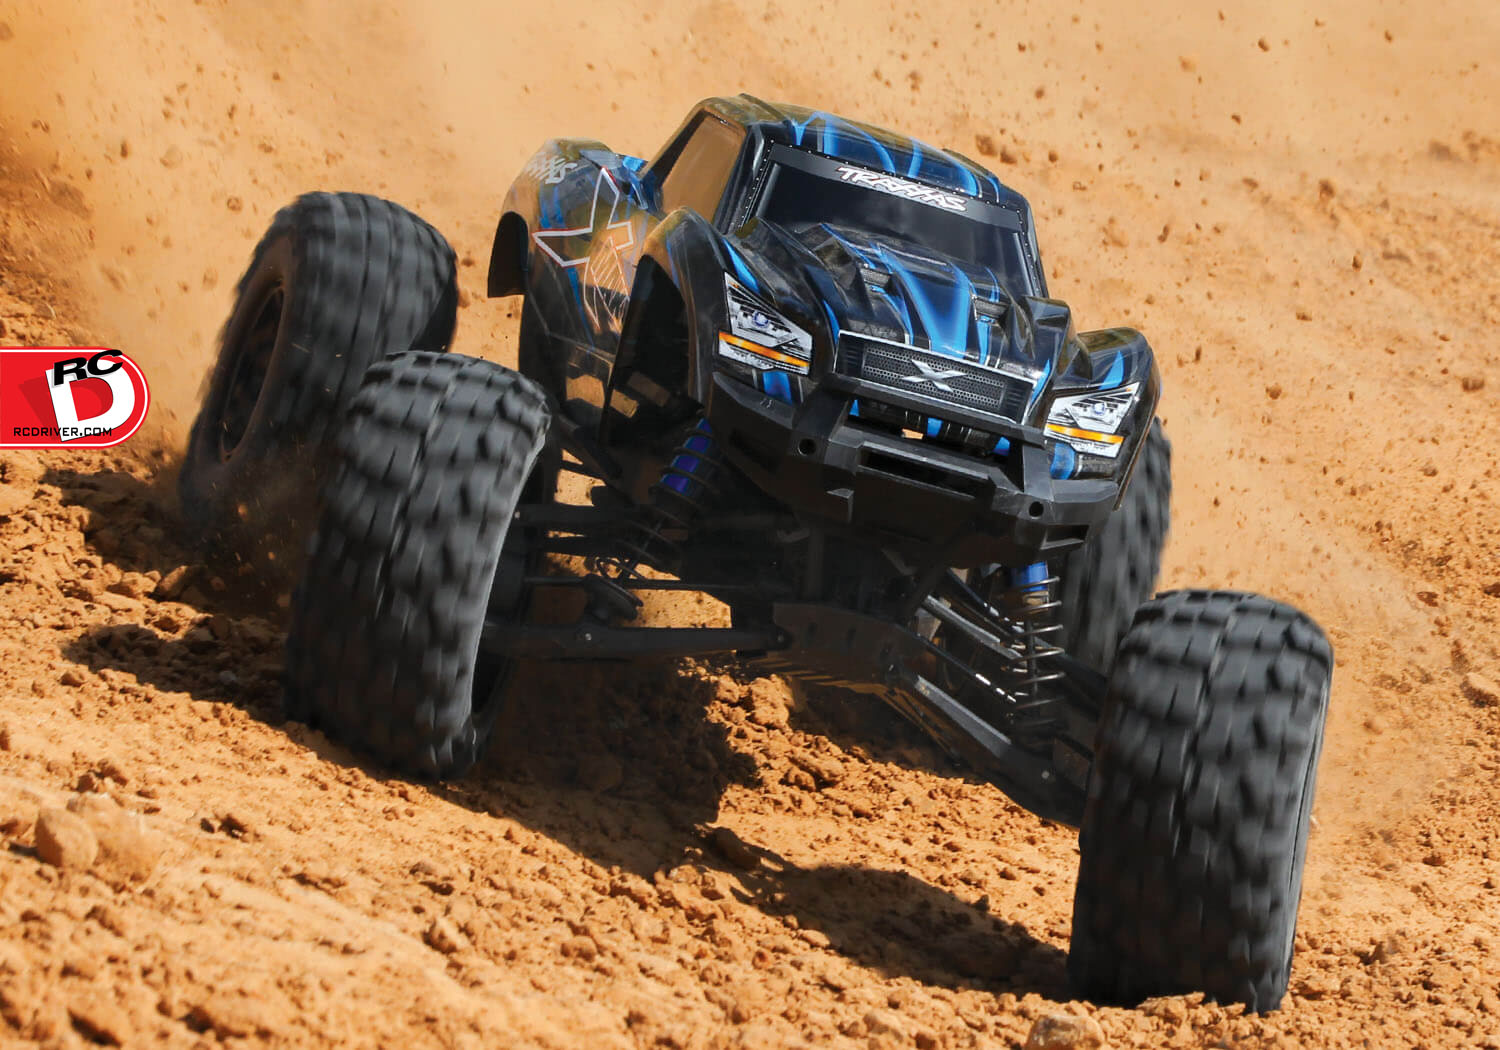 It S Hugh The X Maxx Electric Monster Truck From Traxxas